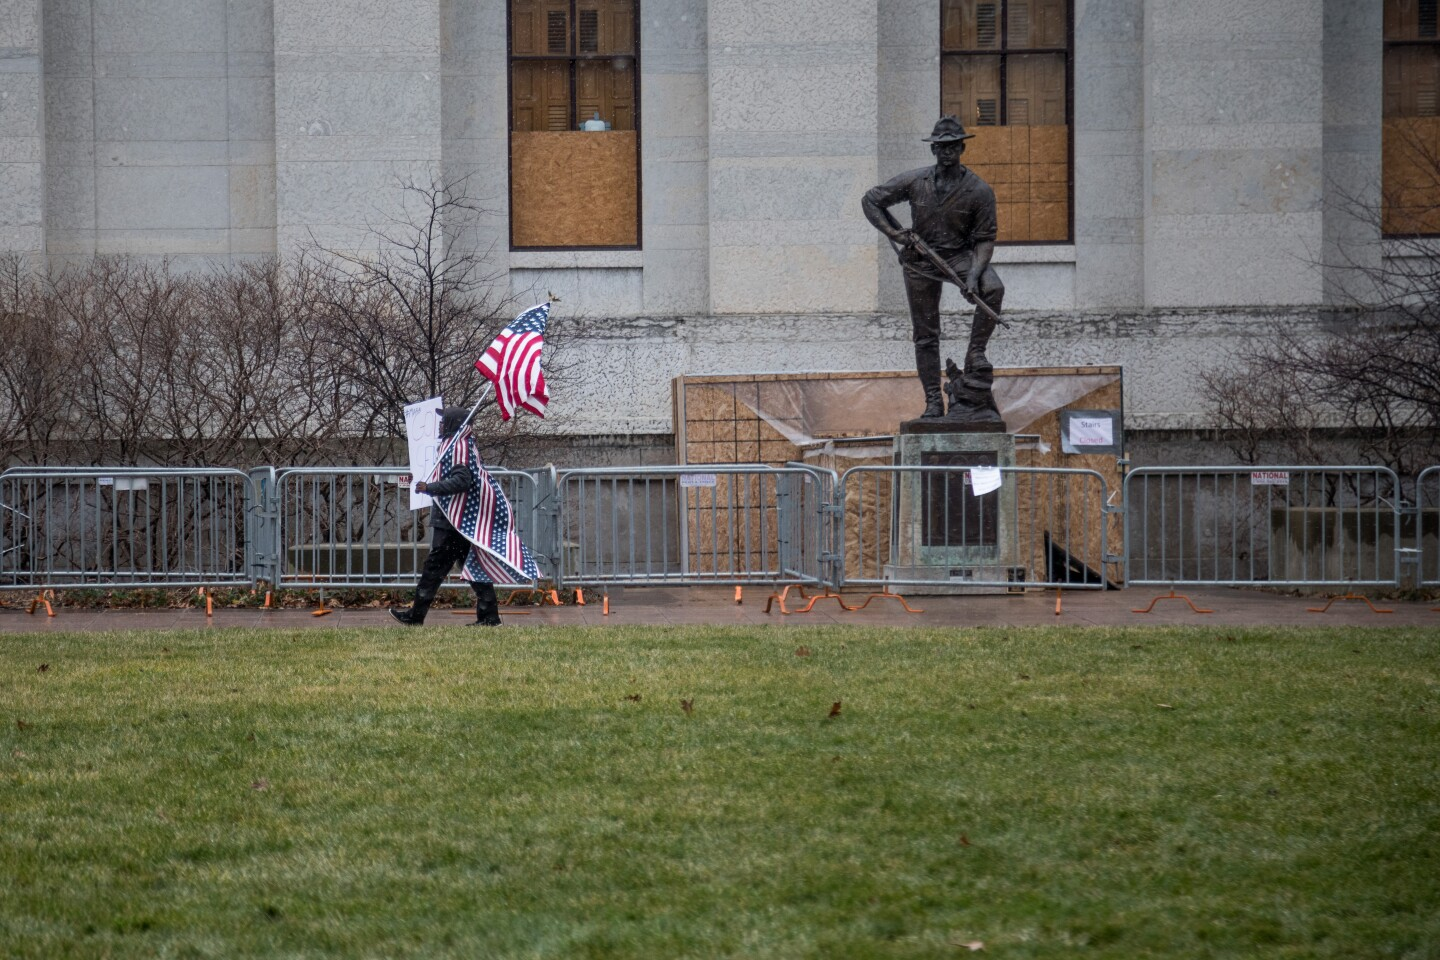 A right wing demonstrator walks past a WWI monument in front of the Ohio Statehouse during a planned Boogaloo Bois Demonstration, Ohio State Capitol, Columbus, Ohio. Sunday, Jan. 17, 2021